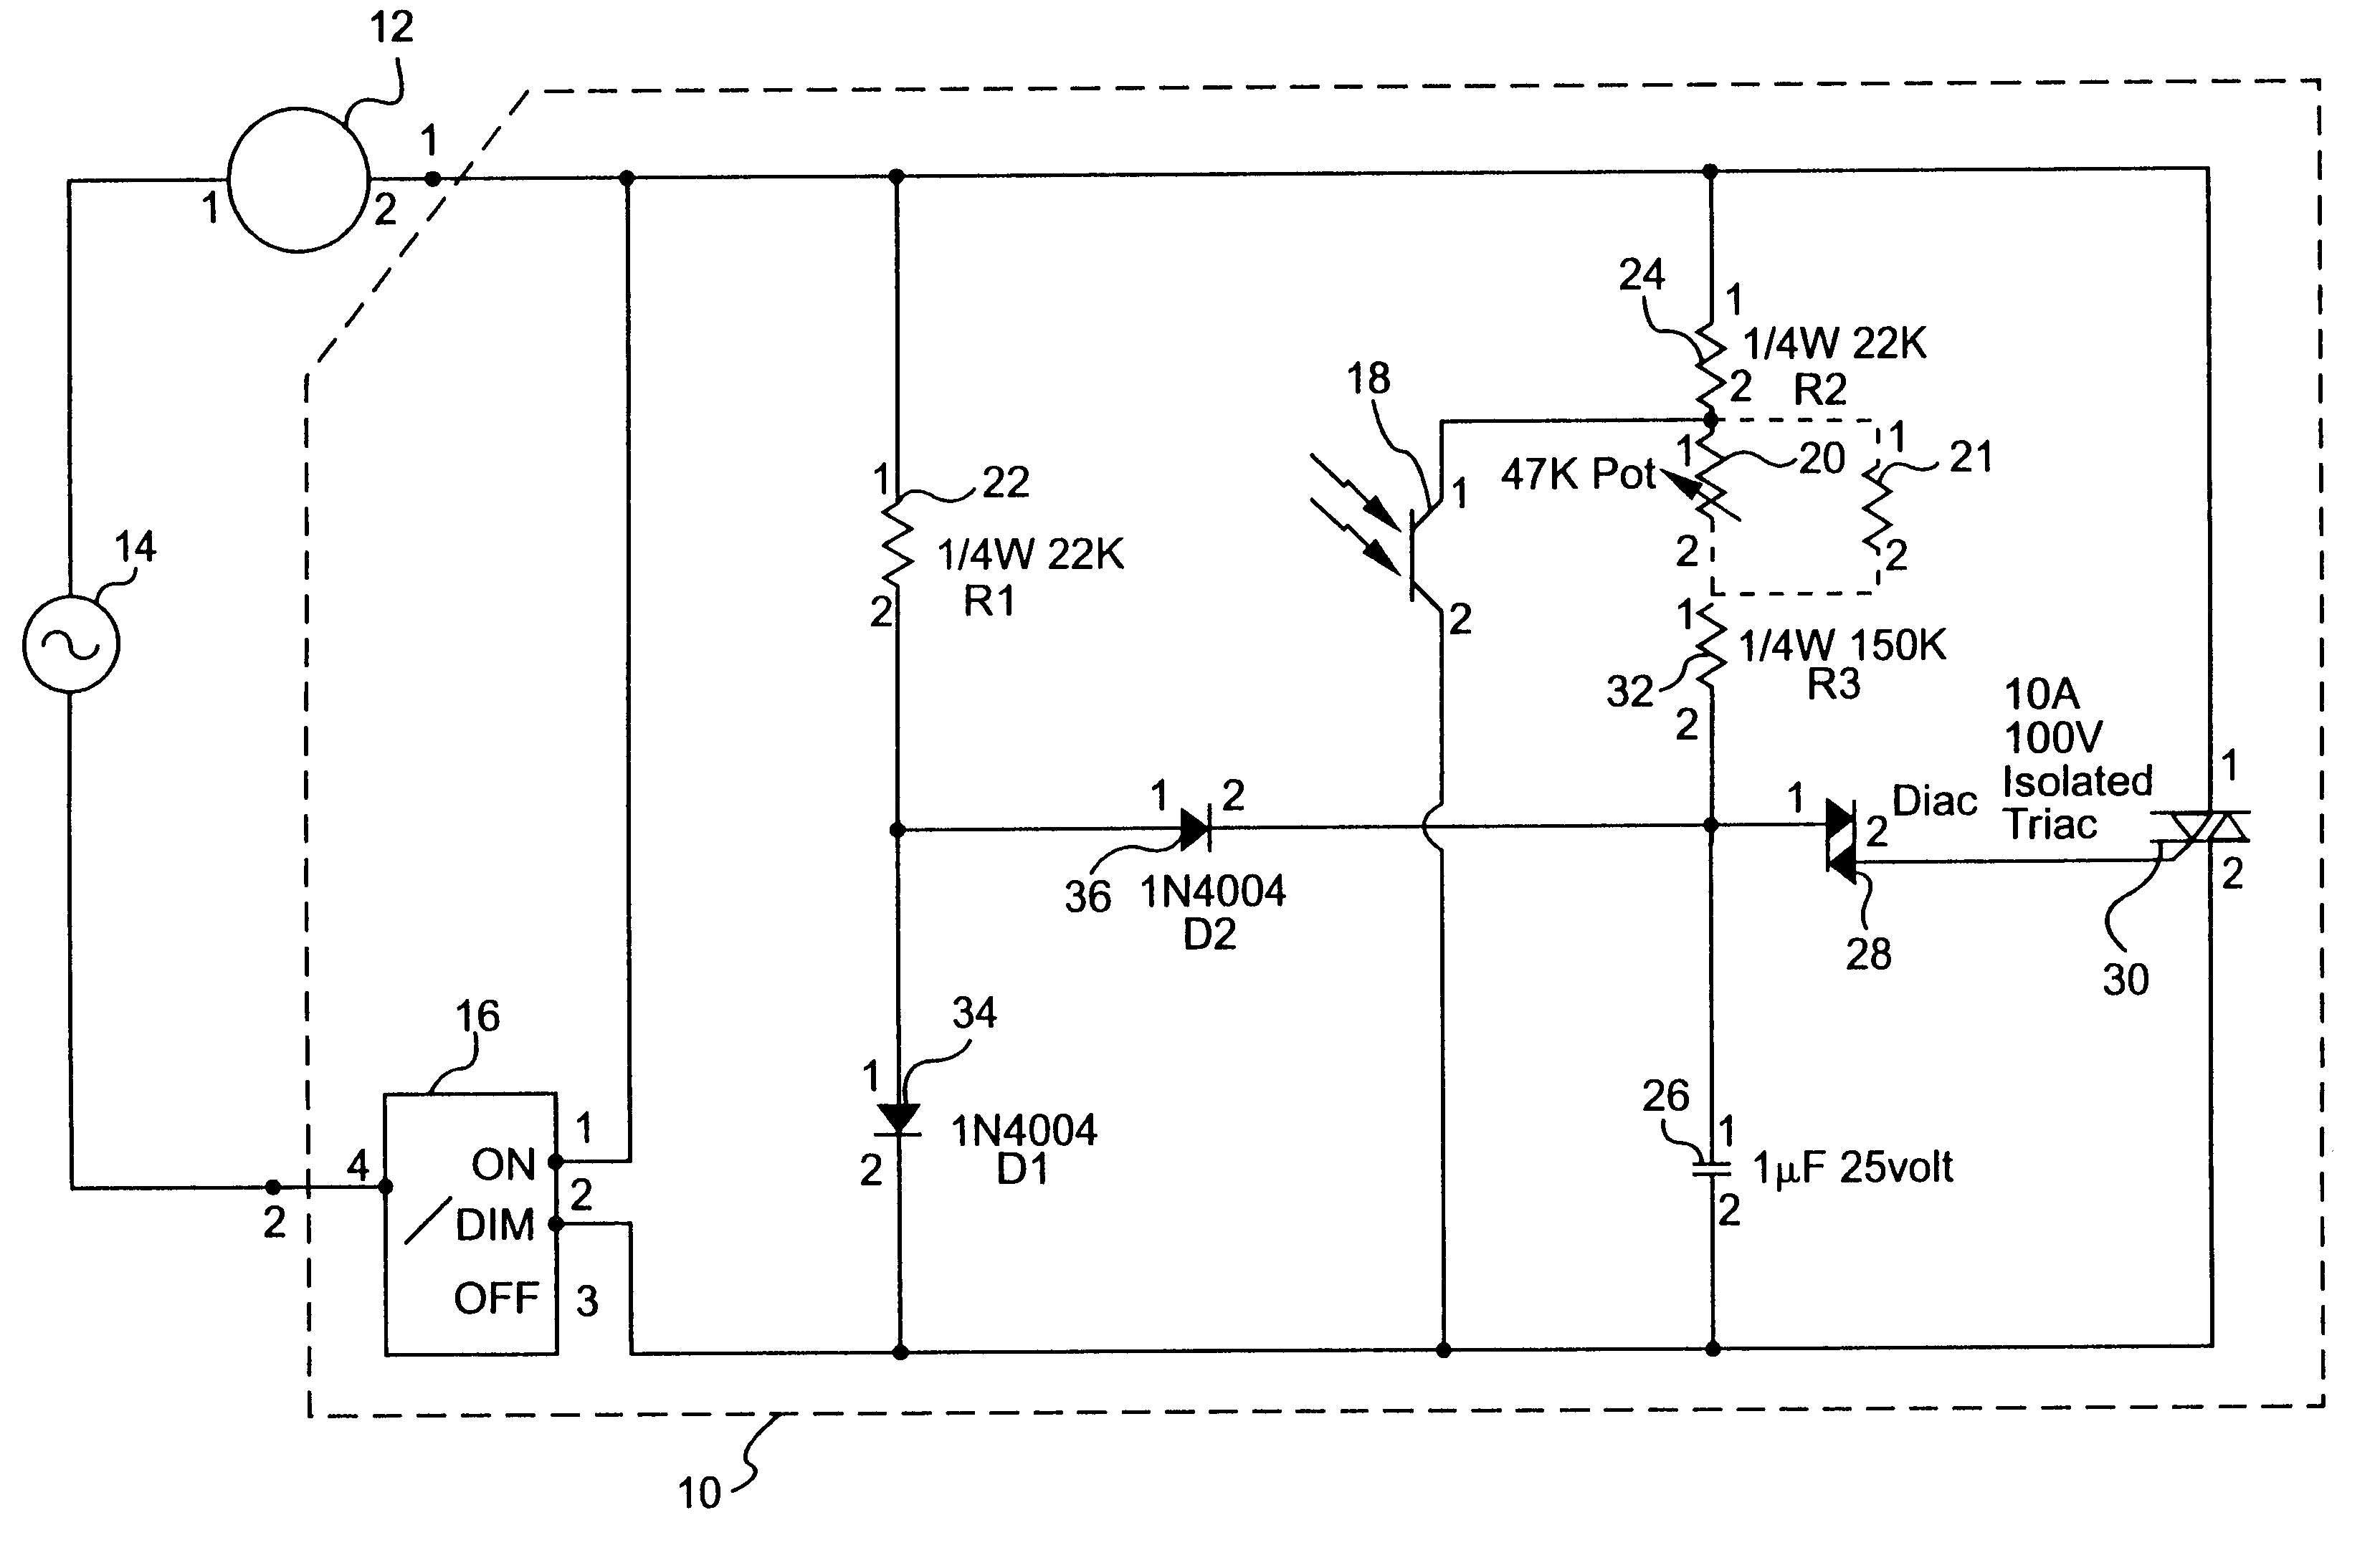 Westinghouse 3 Way Fan Light Switch Wiring Diagram : Secret diagram learn wiring for westinghouse